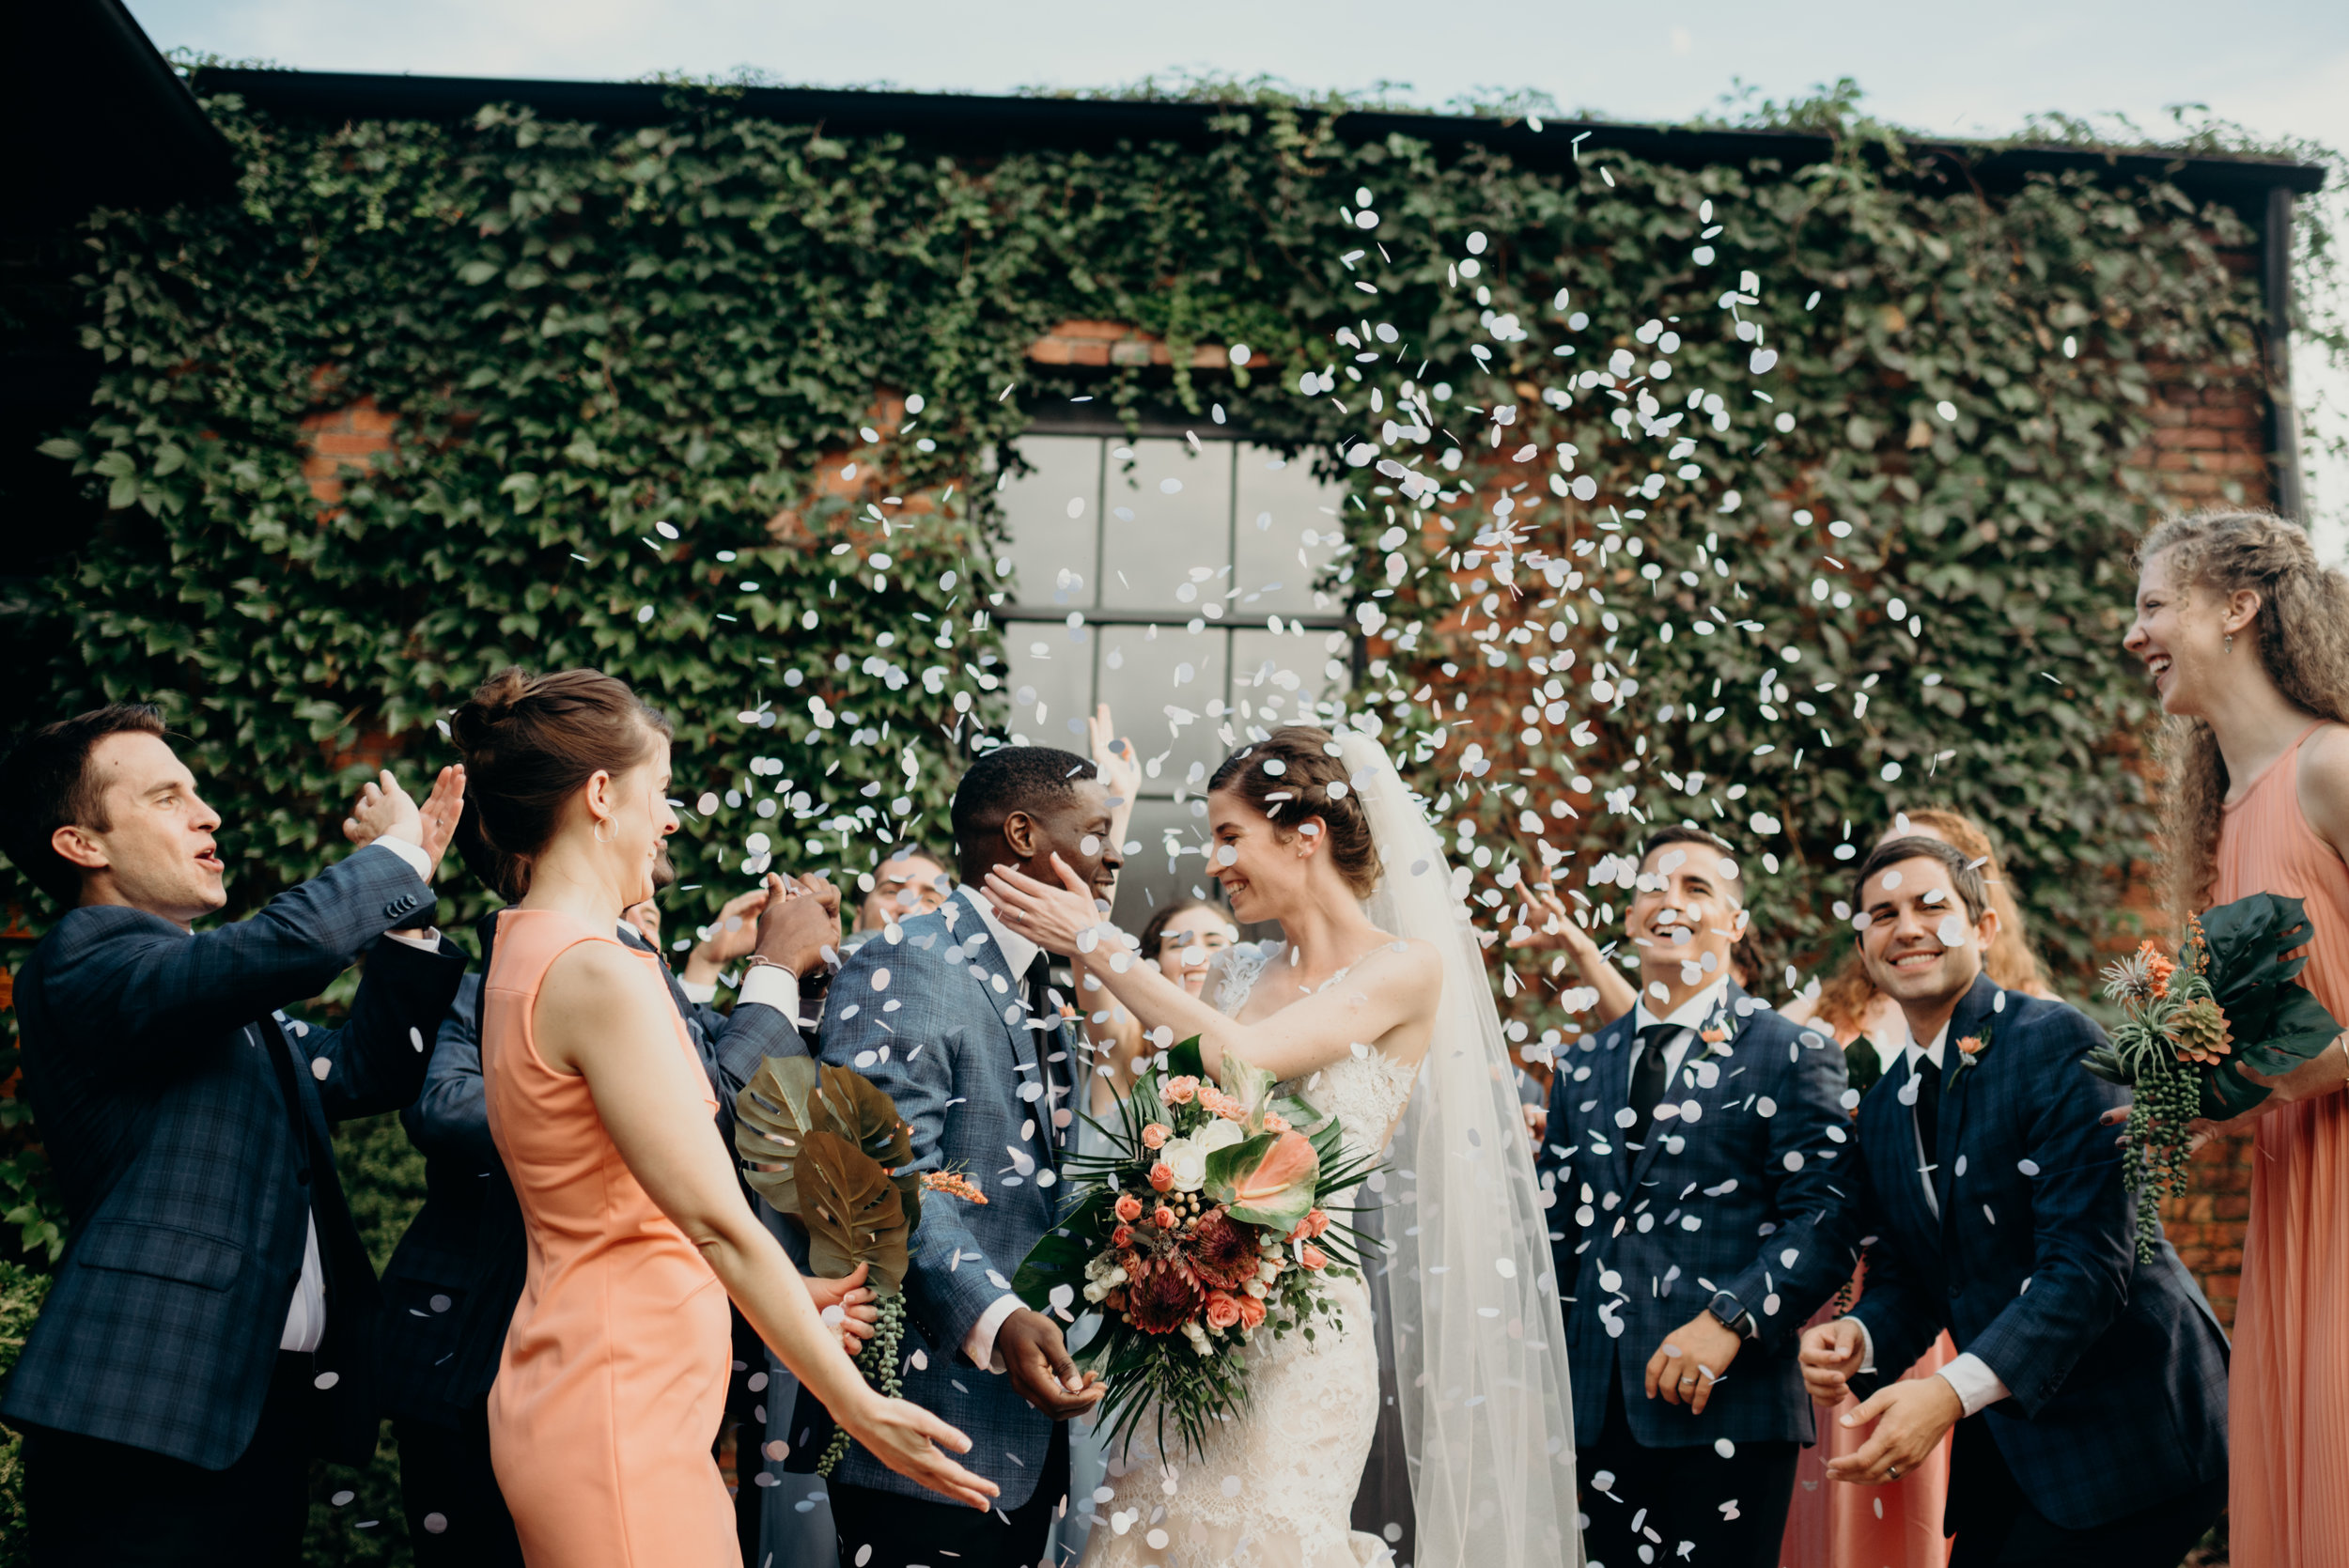 weddings - are a celebration of your love story